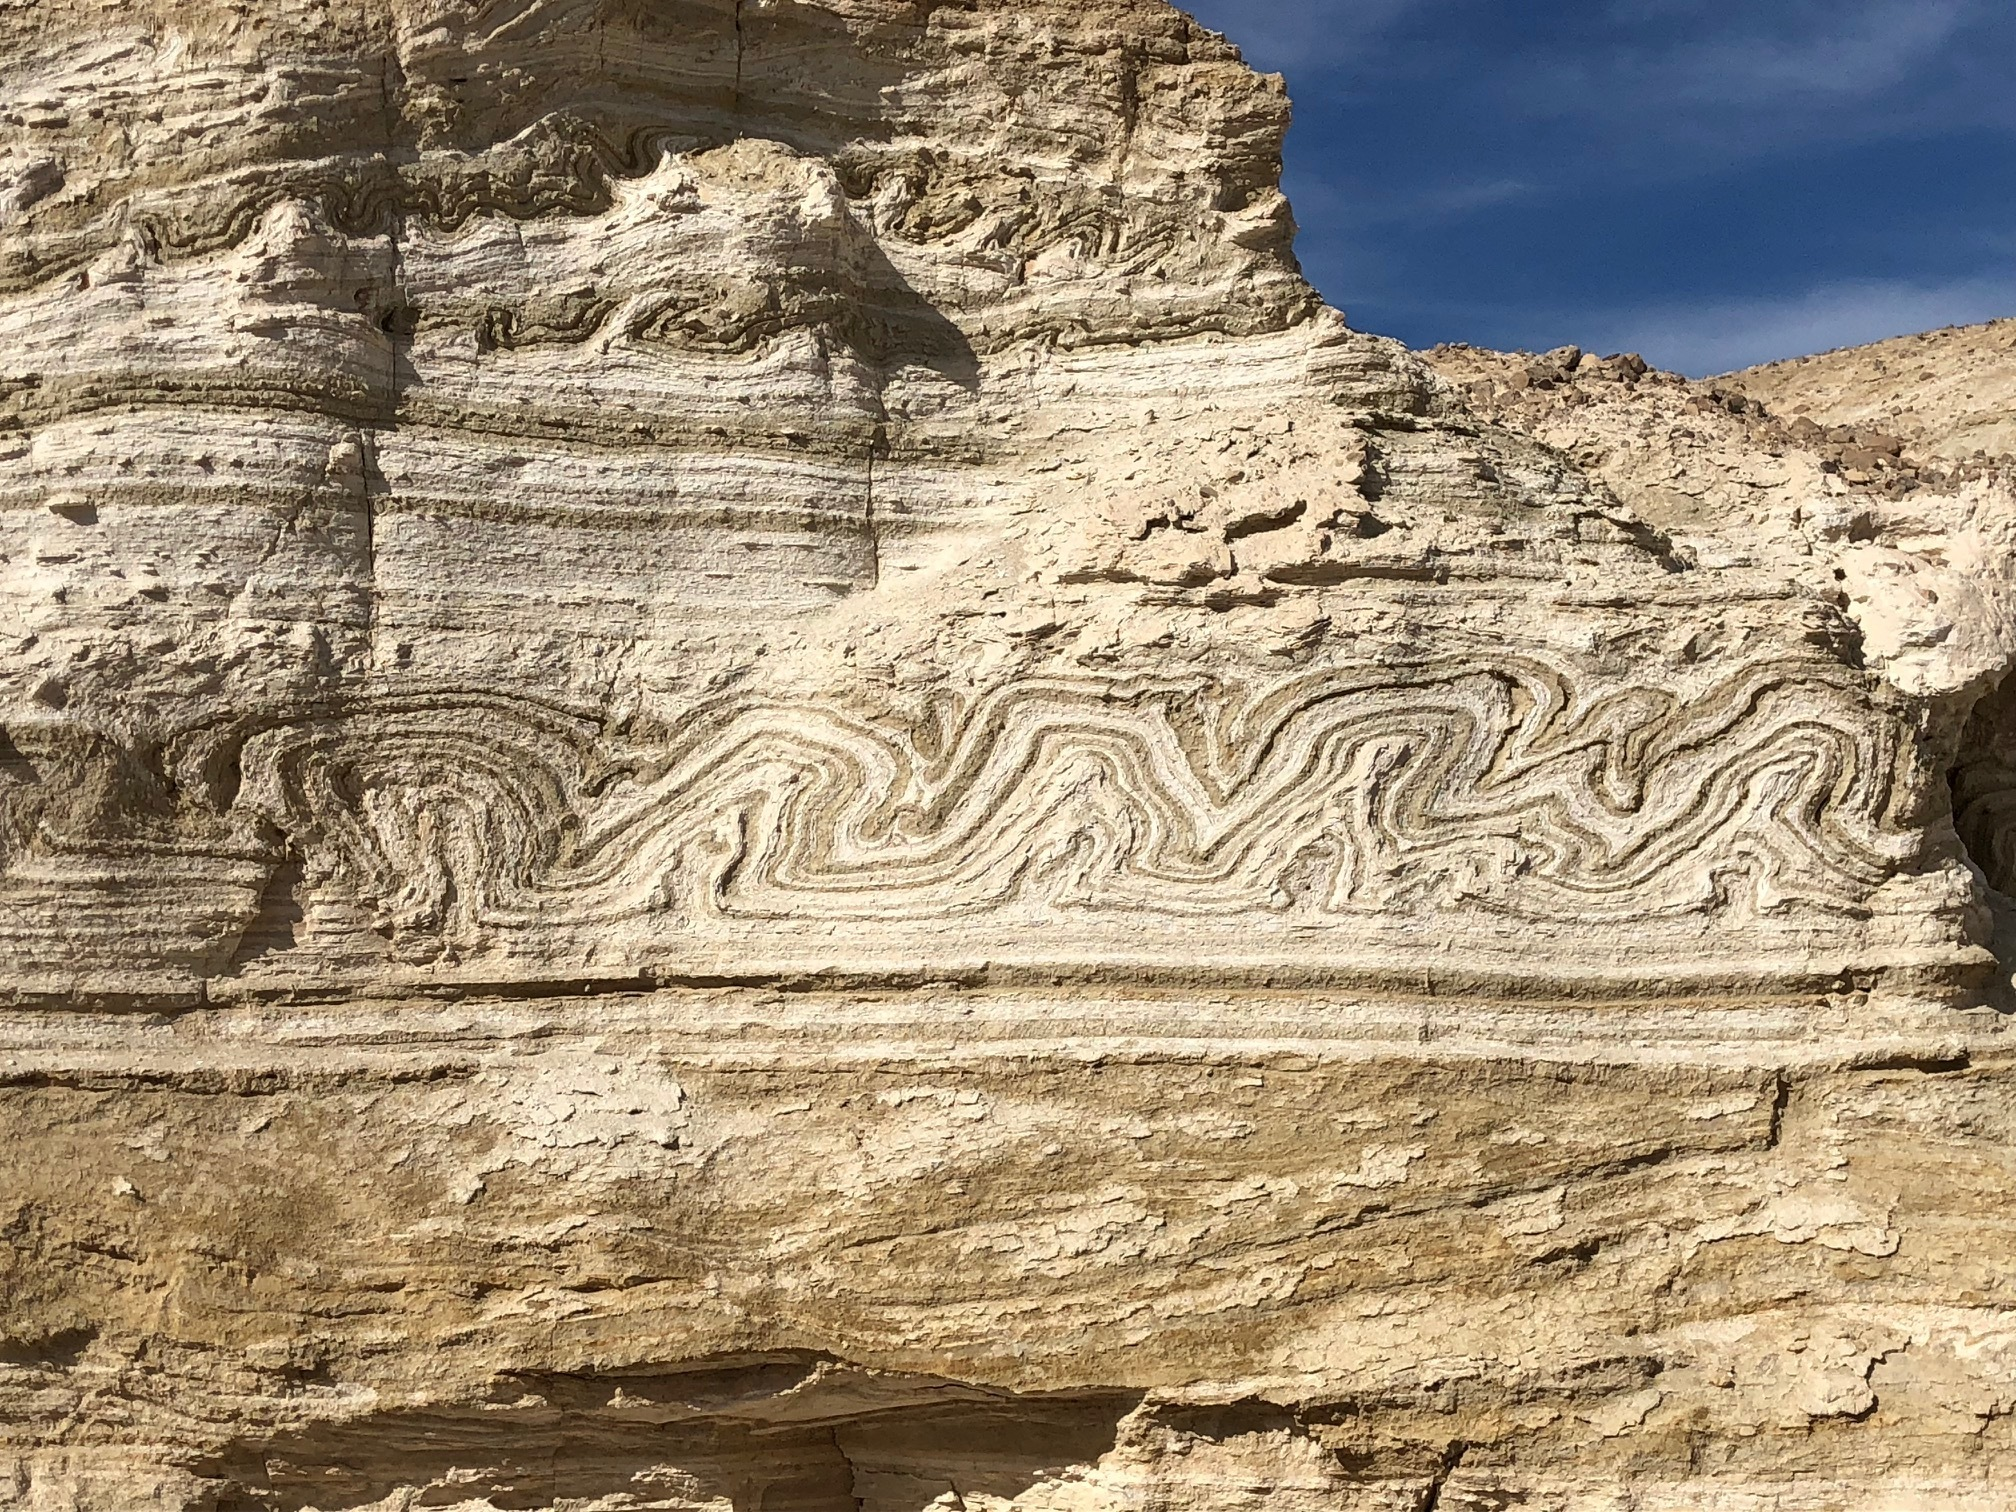 Geological folds